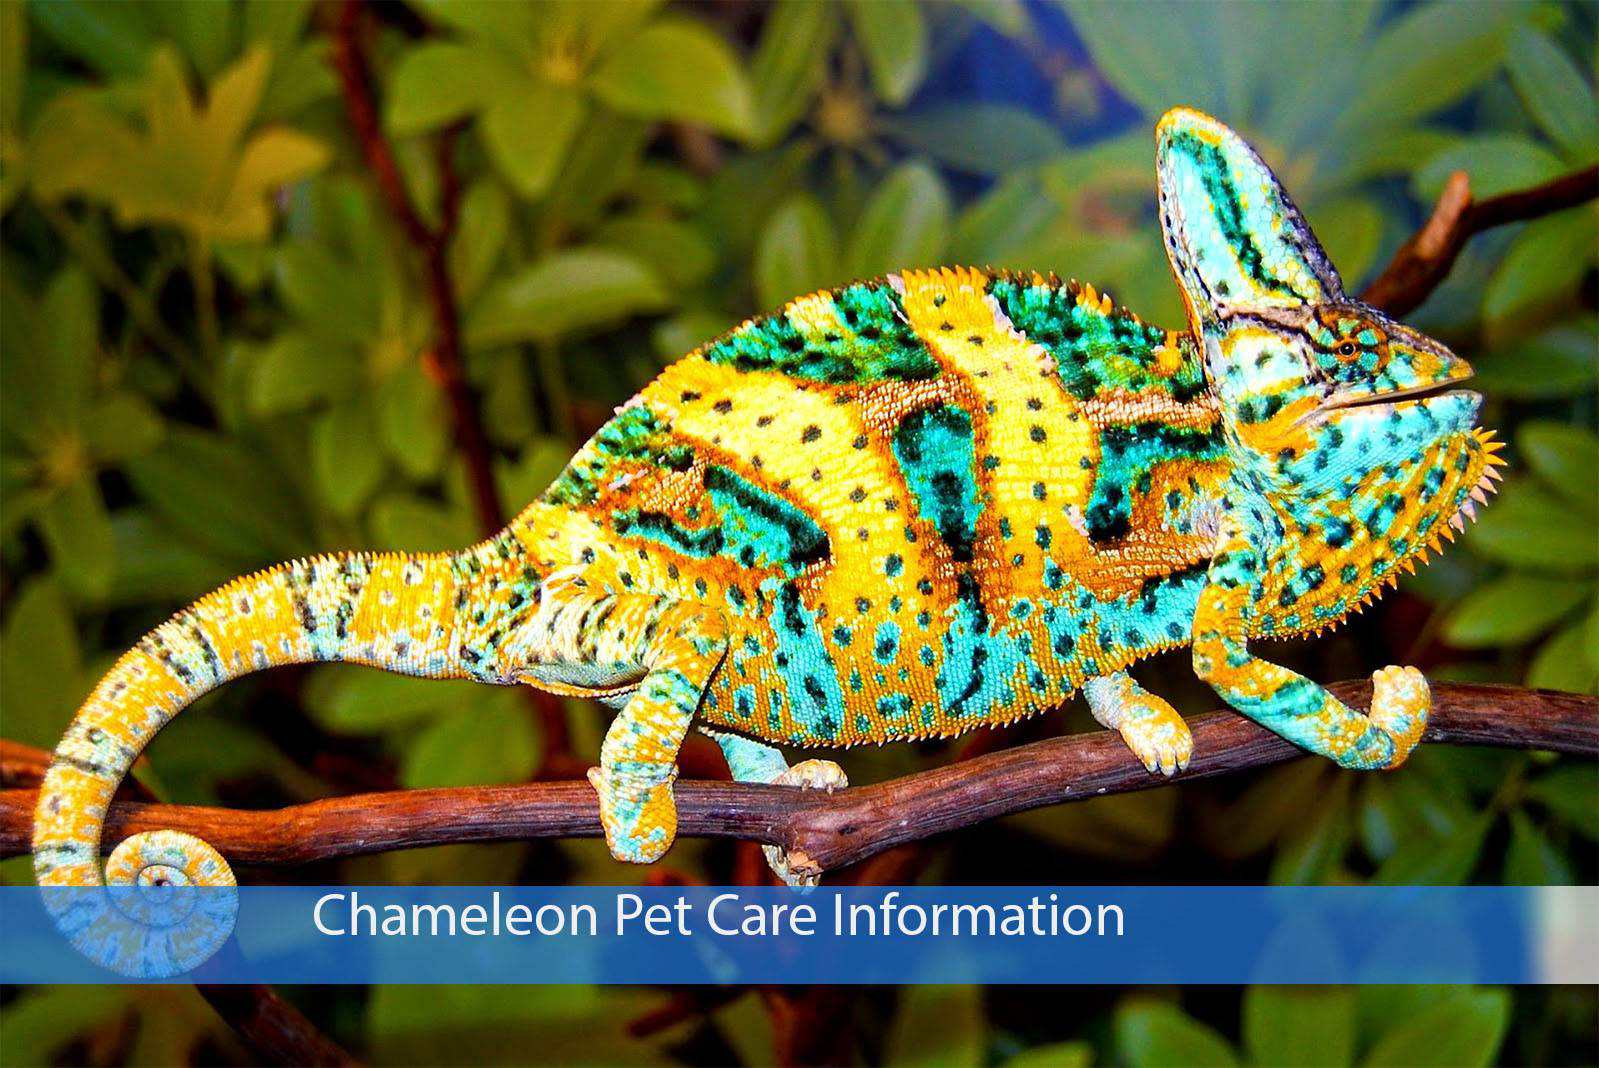 Chameleon Pet Care Information